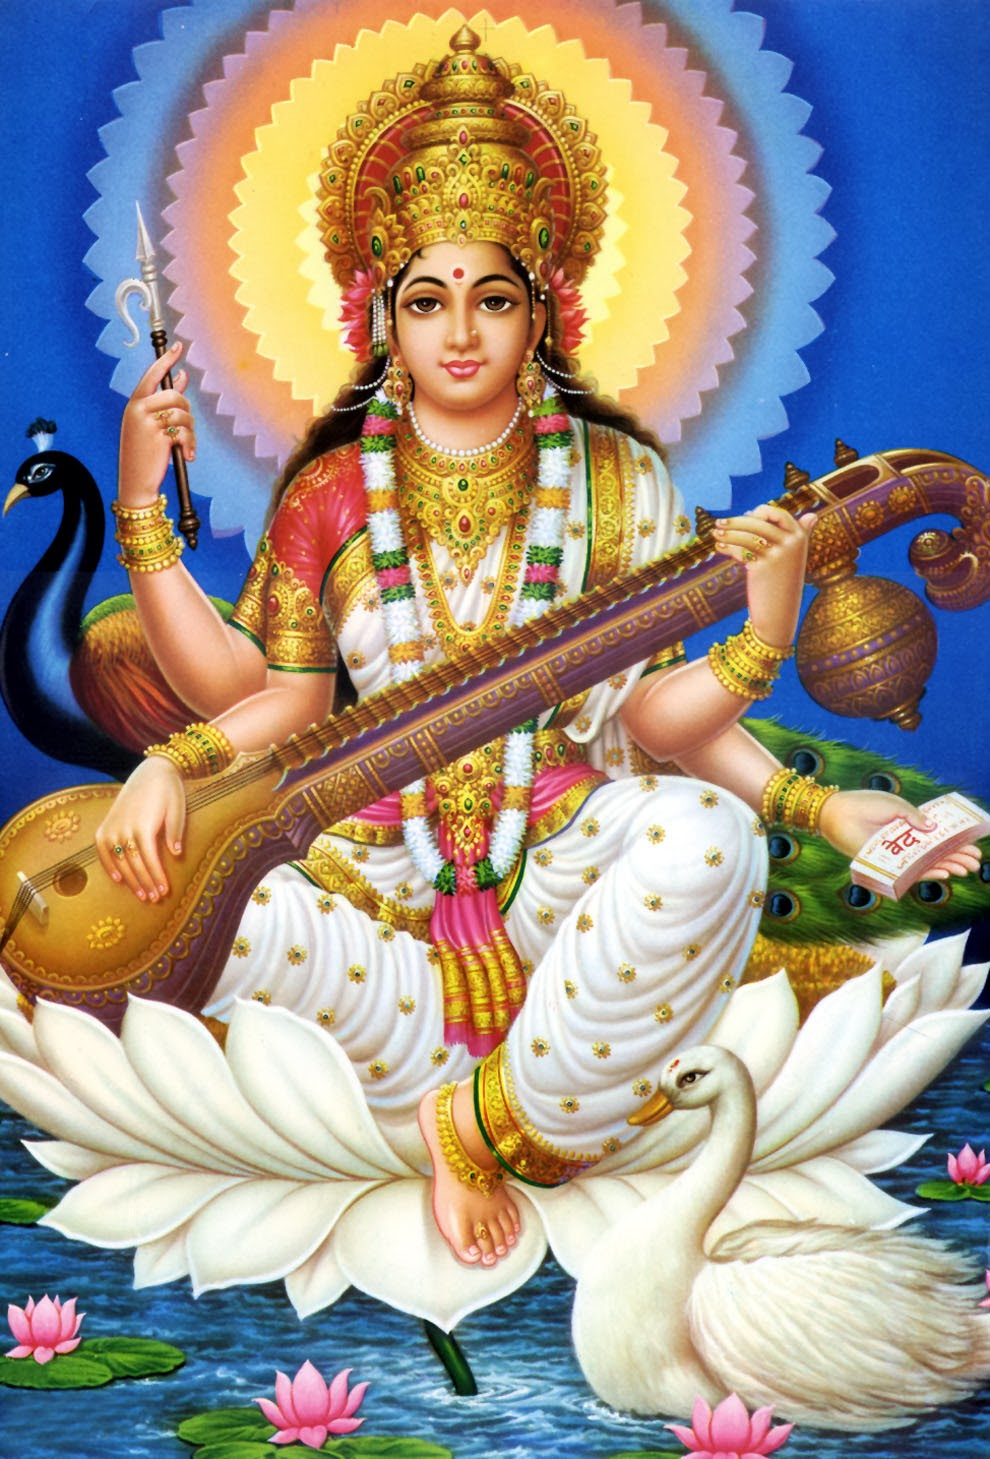 Goddess Saraswati Wallpaper 7